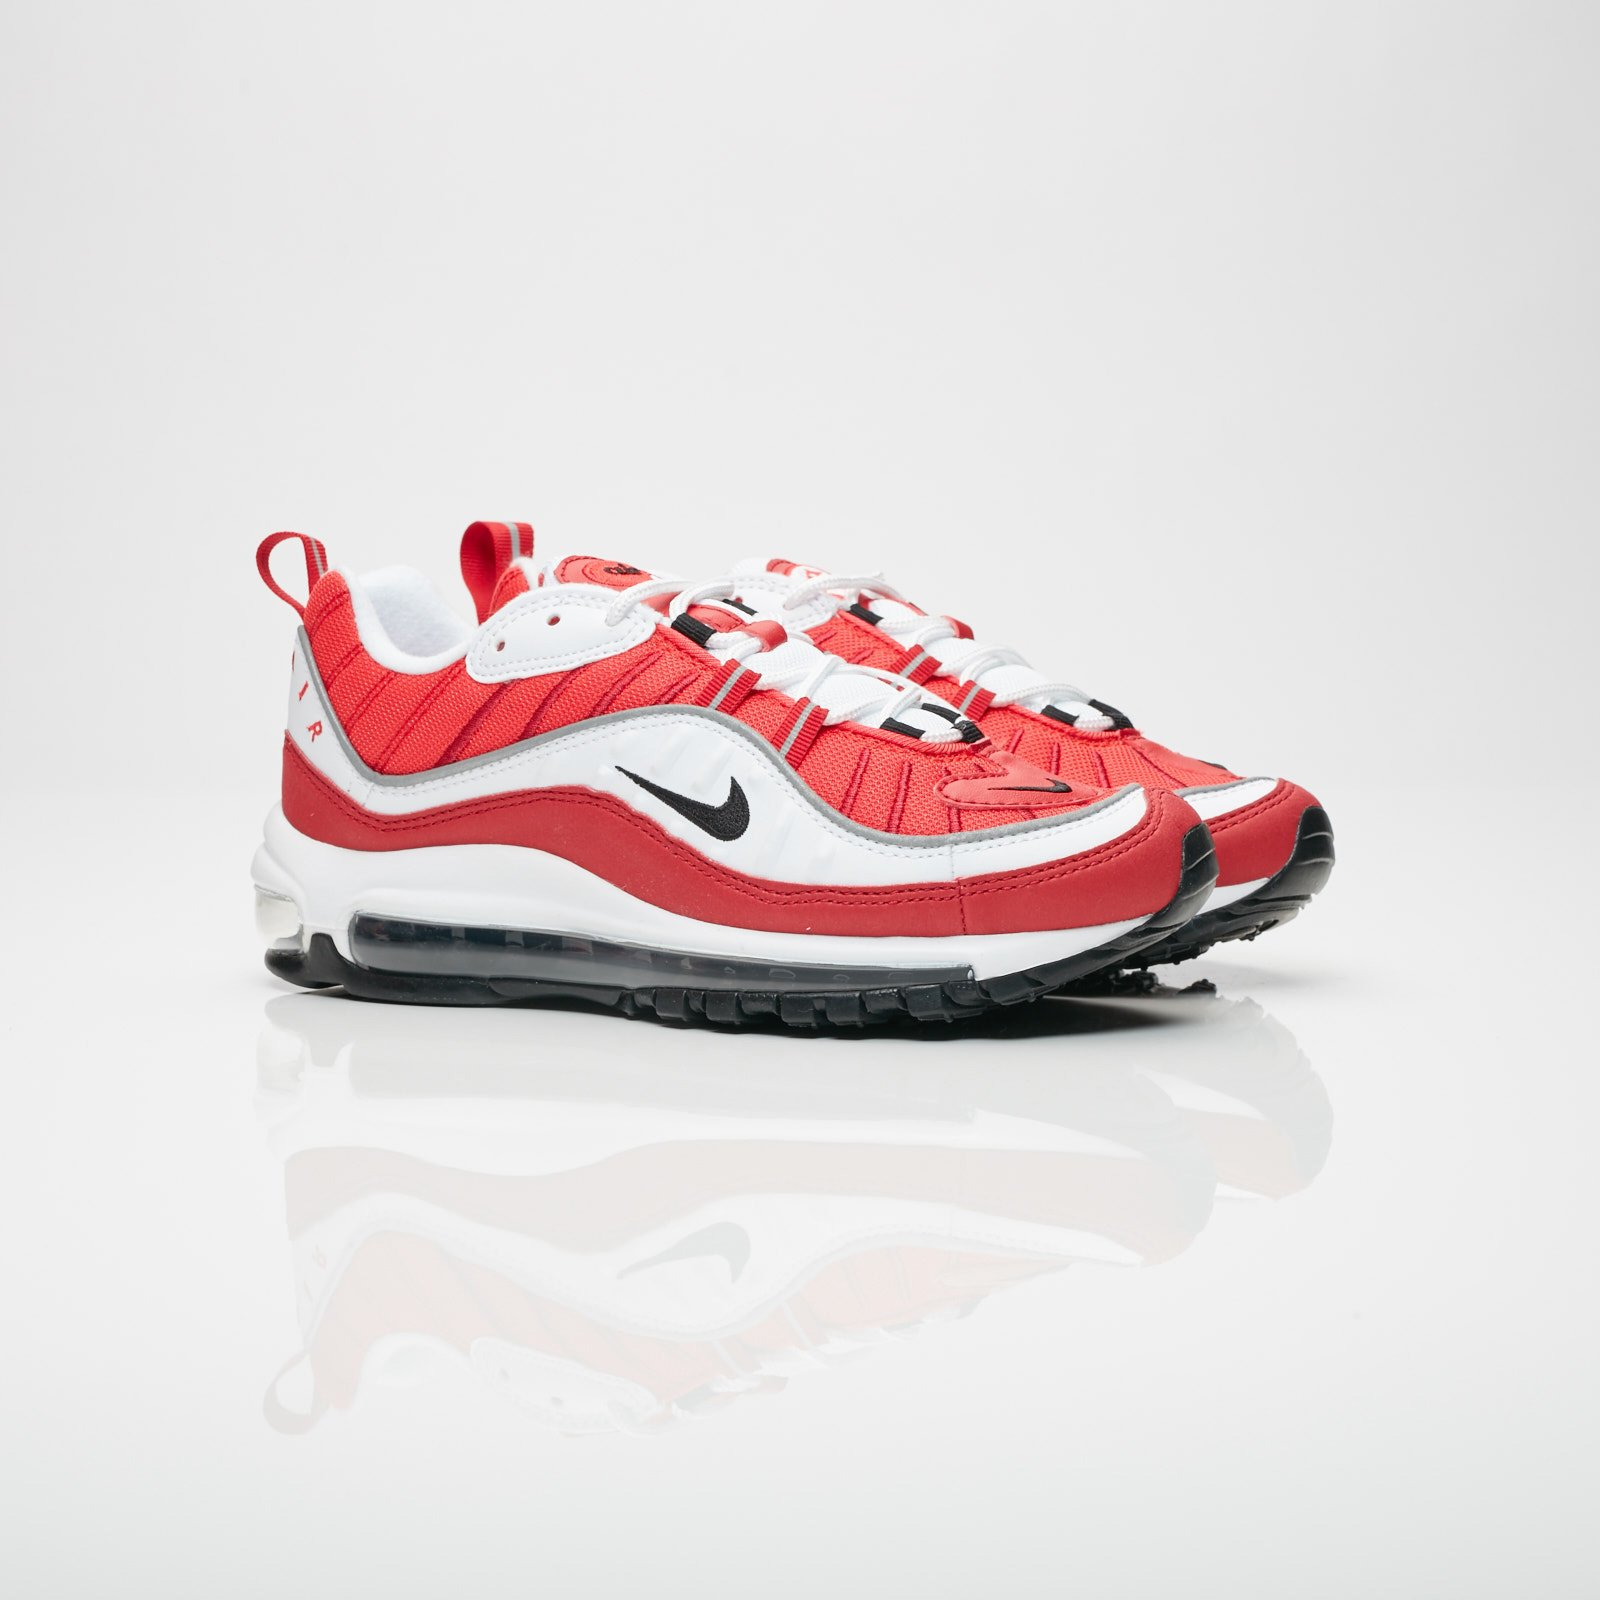 feb6ff9ec72c Nike Wmns Air Max 98 - Ah6799-101 - Sneakersnstuff